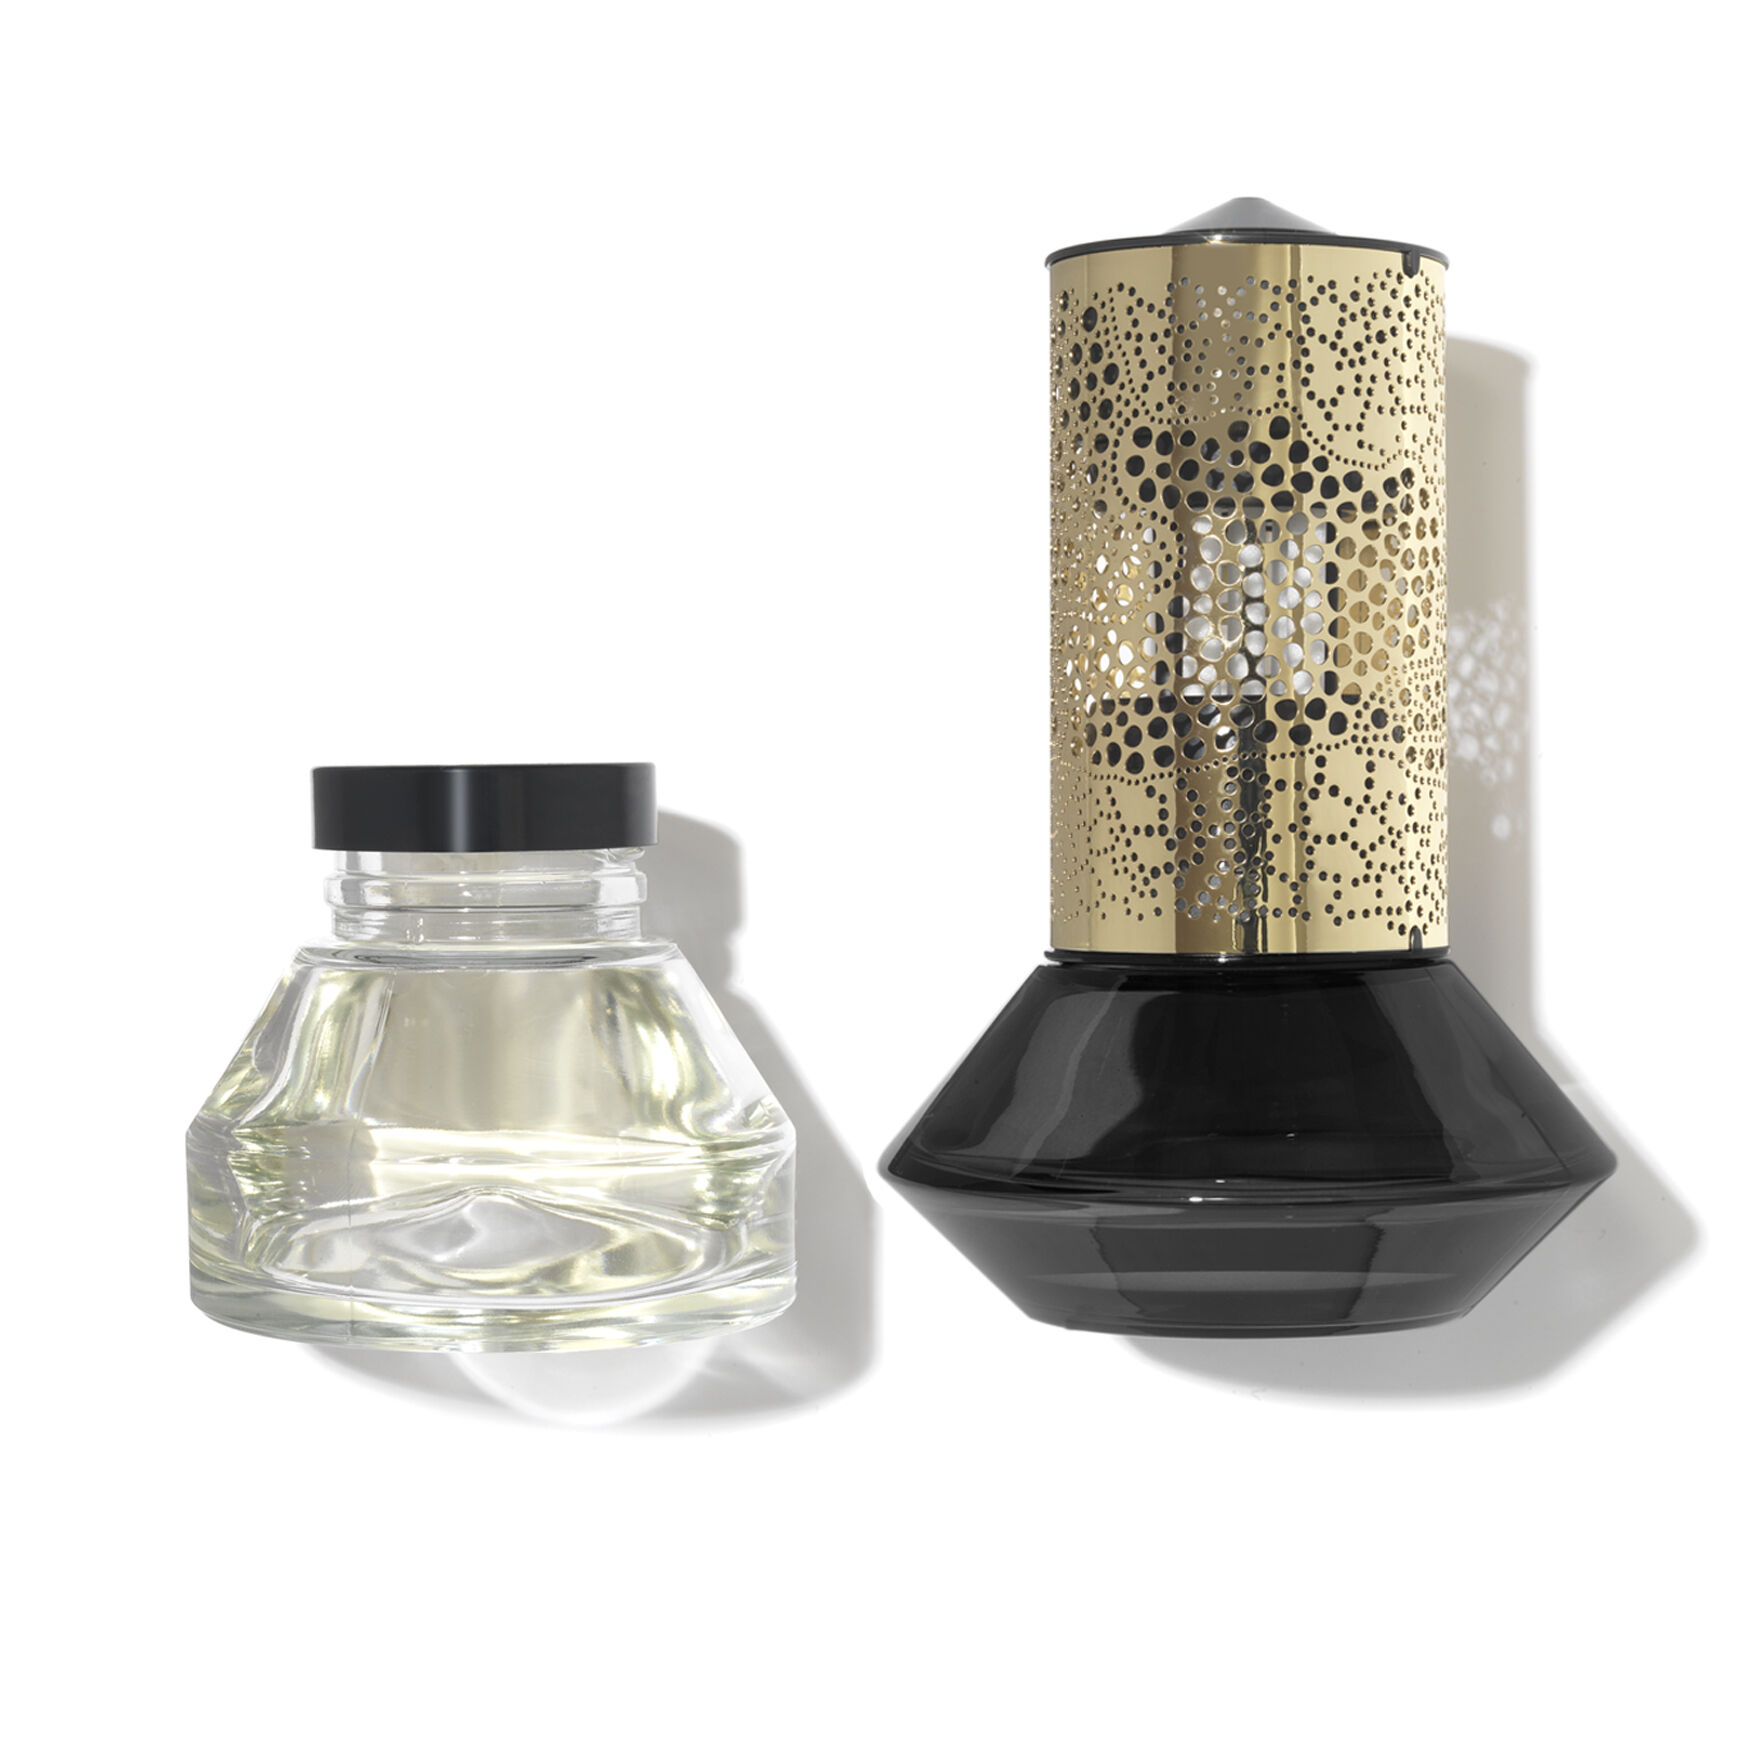 Diptyque Hourglass 2 0 Baies Diffuser Space Nk